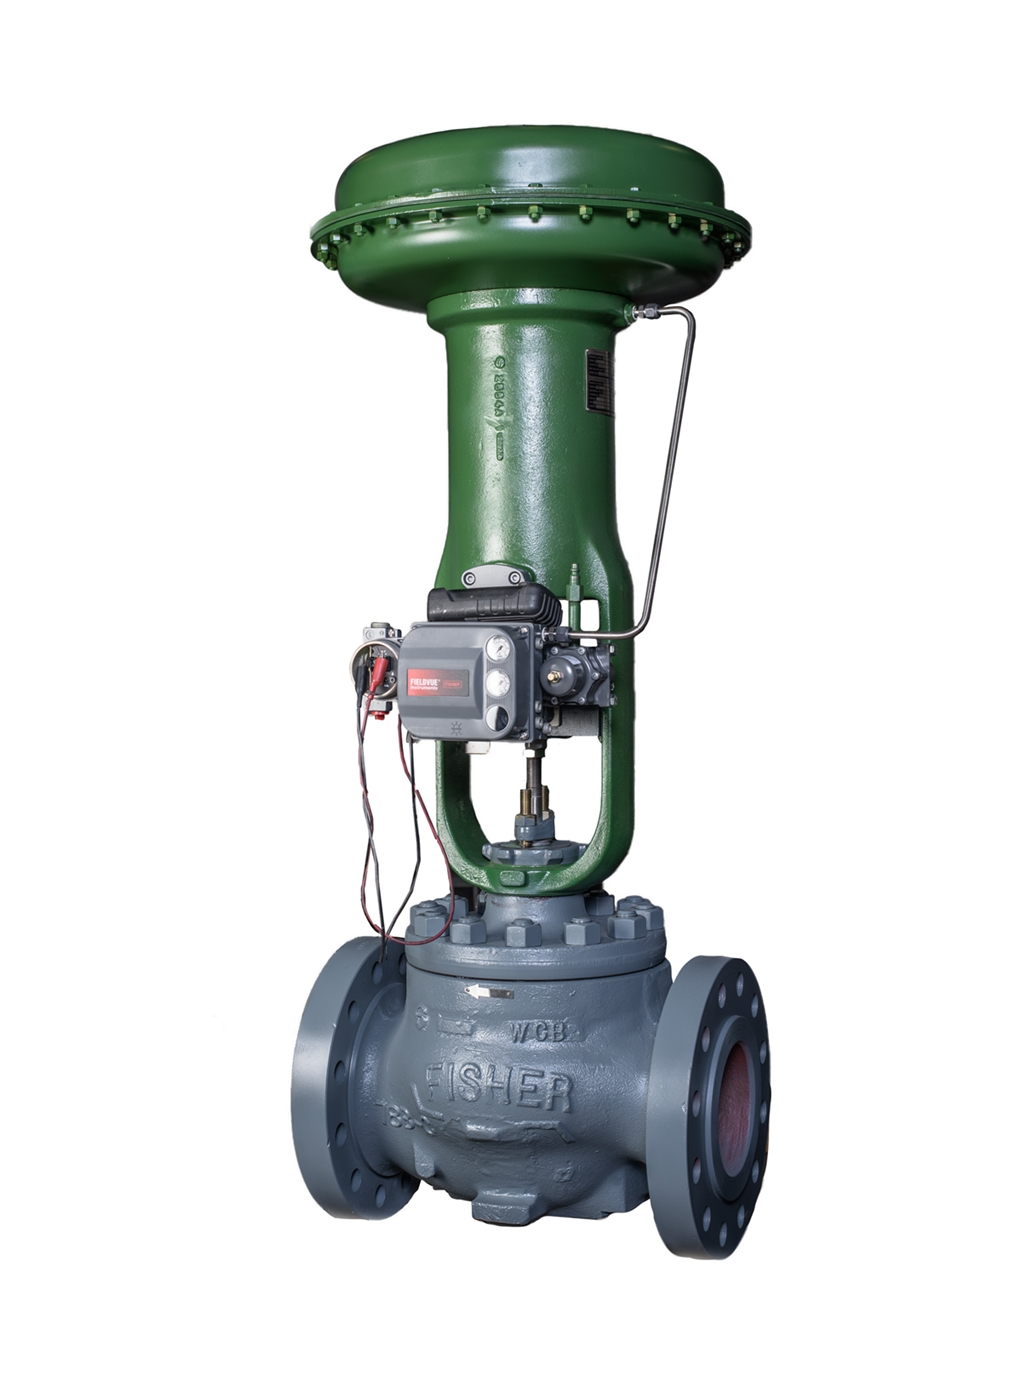 remanufactured-Fisher-ET-control-valve-with-667-actuator-and-dvc6200-valve-positioner (2)